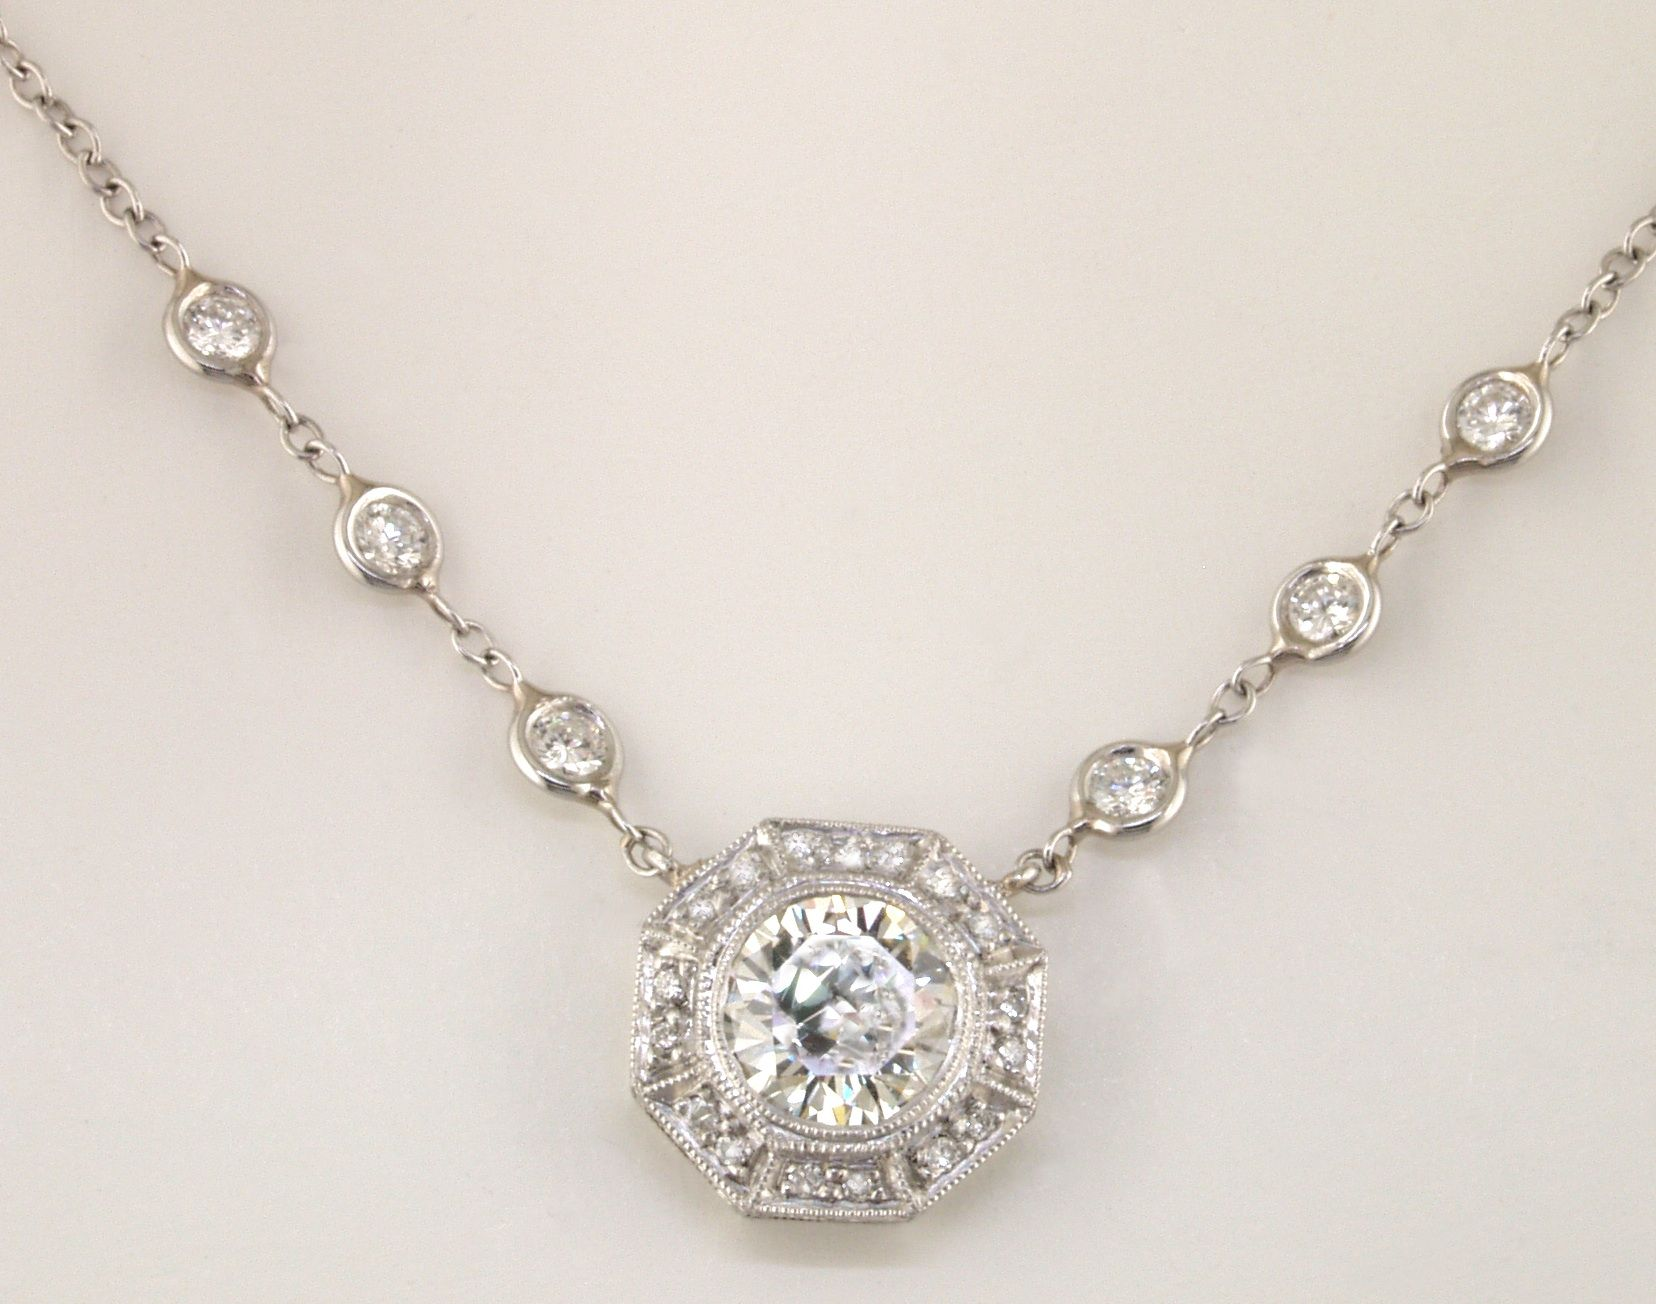 Best 25 Diamond pendant ideas on Pinterest